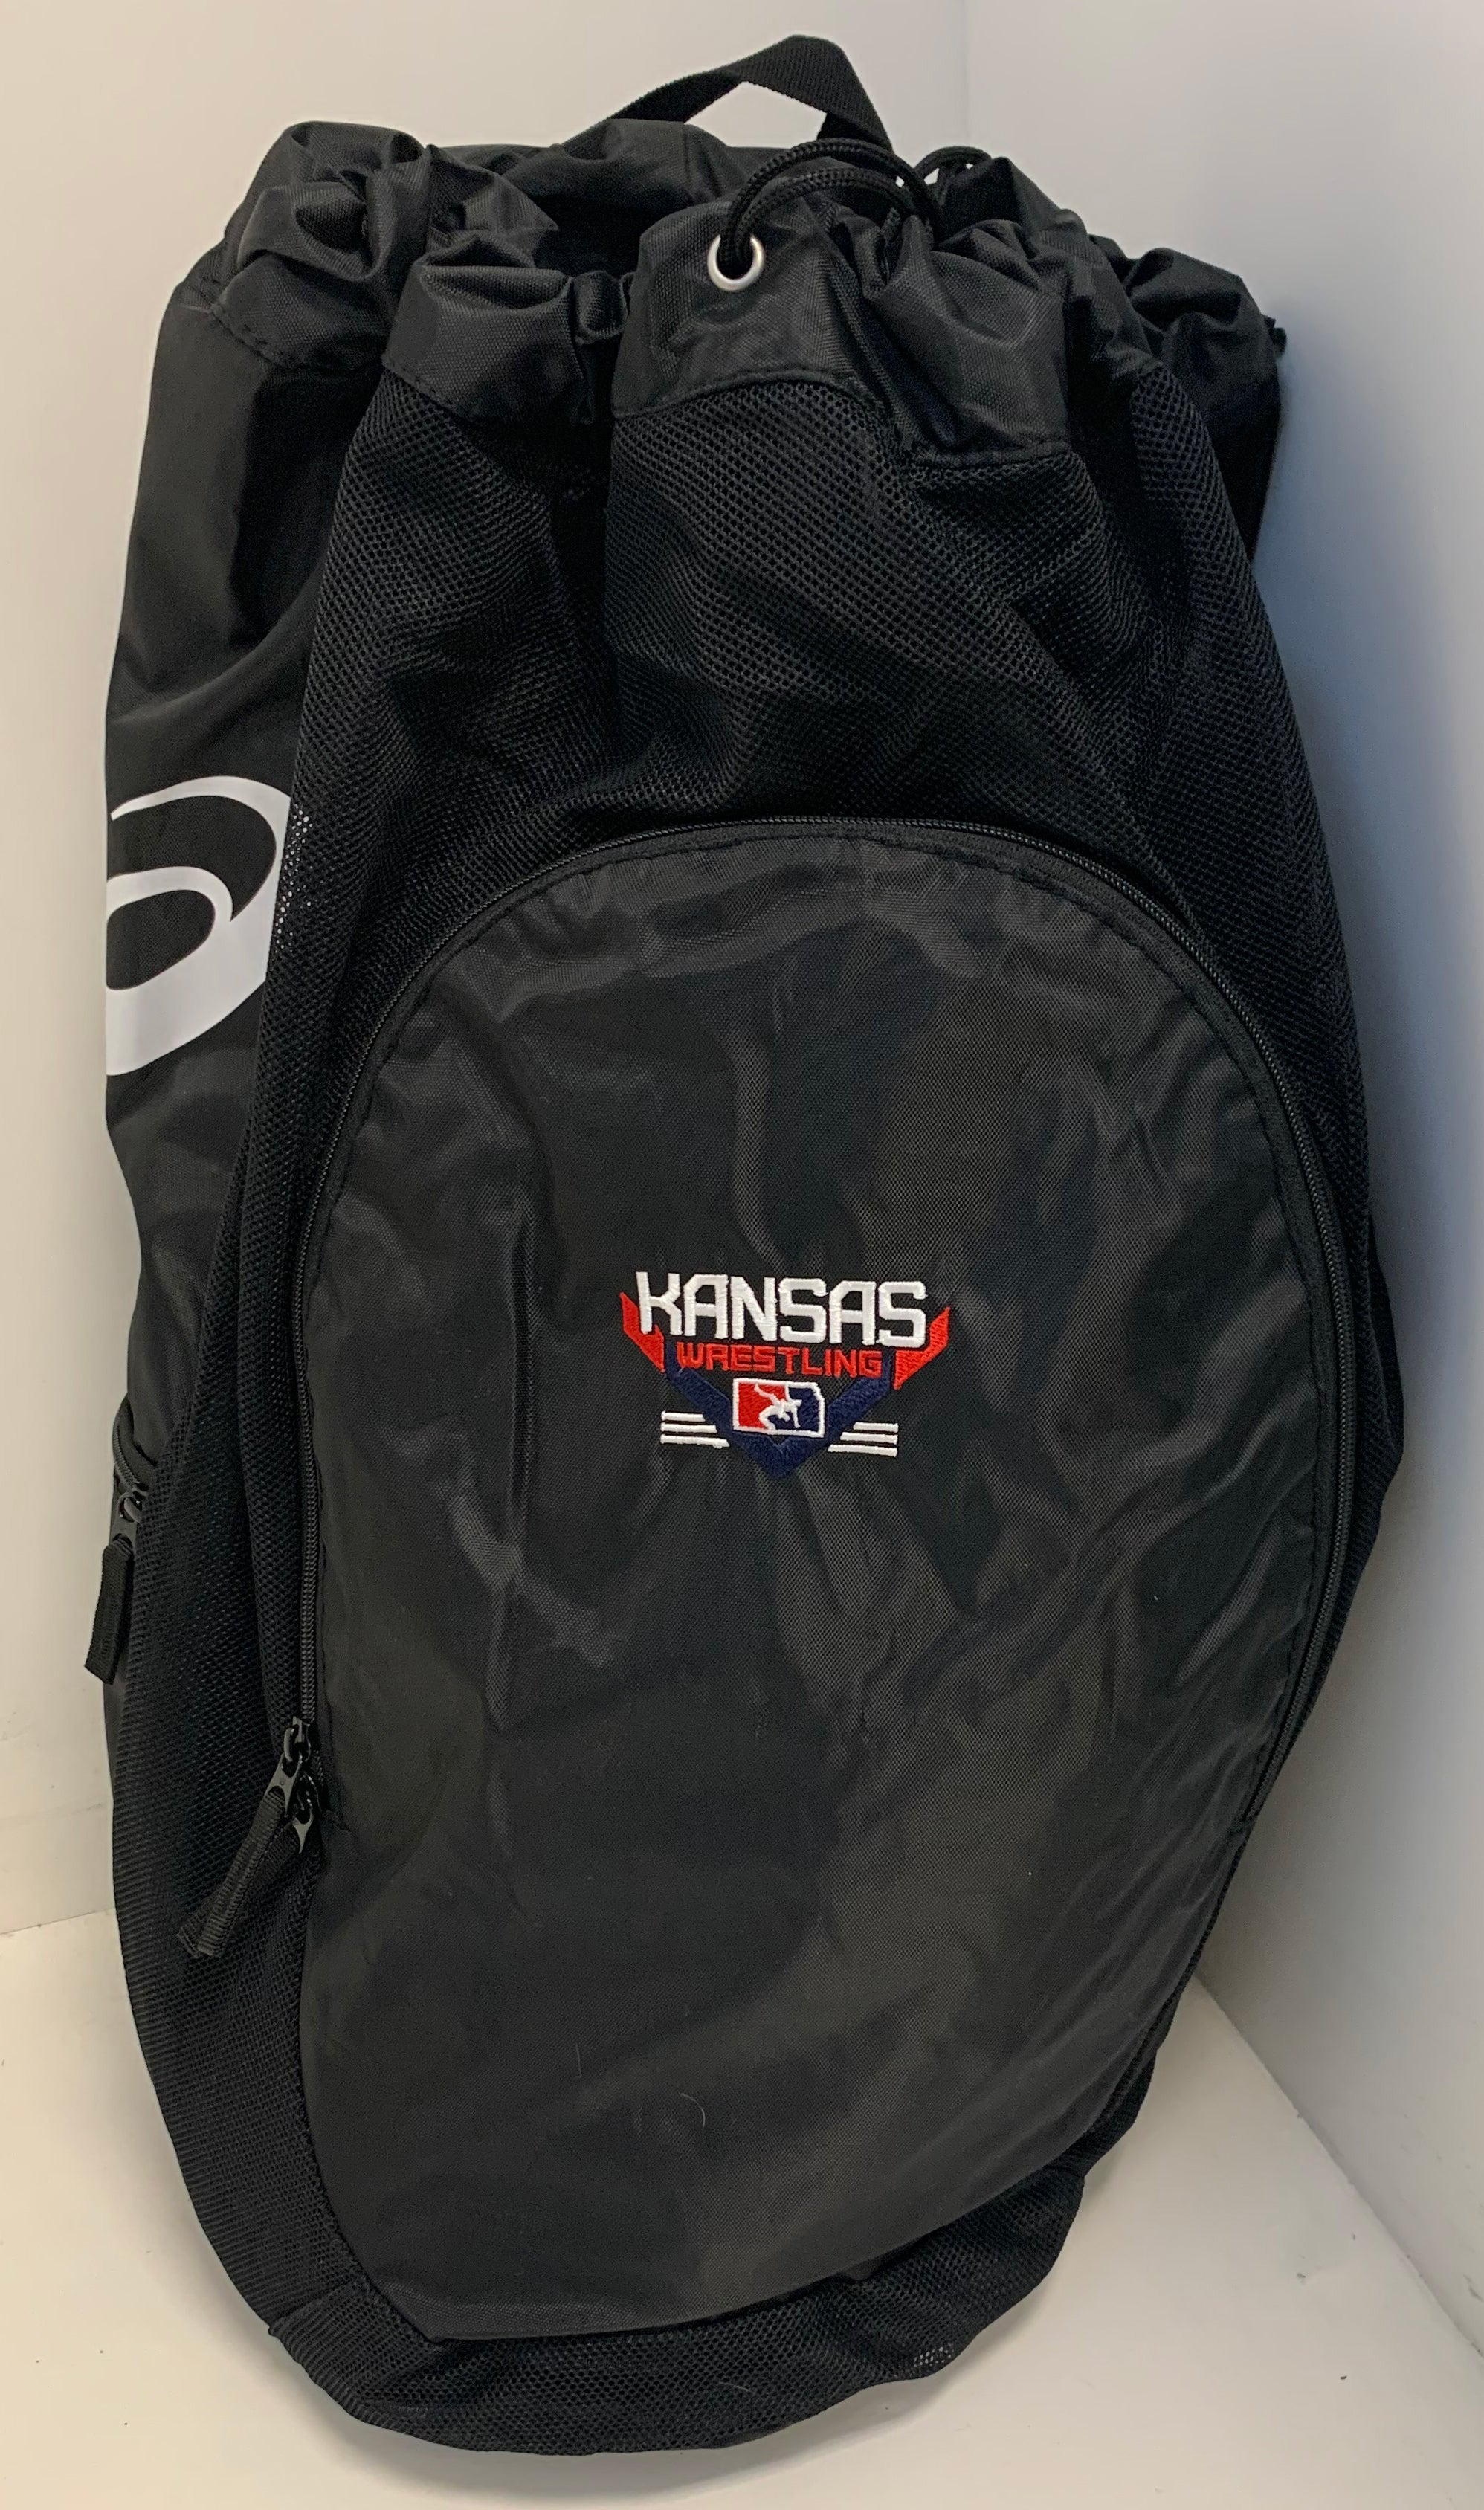 Kansas USA Wrestling Black Asics Gear Bag